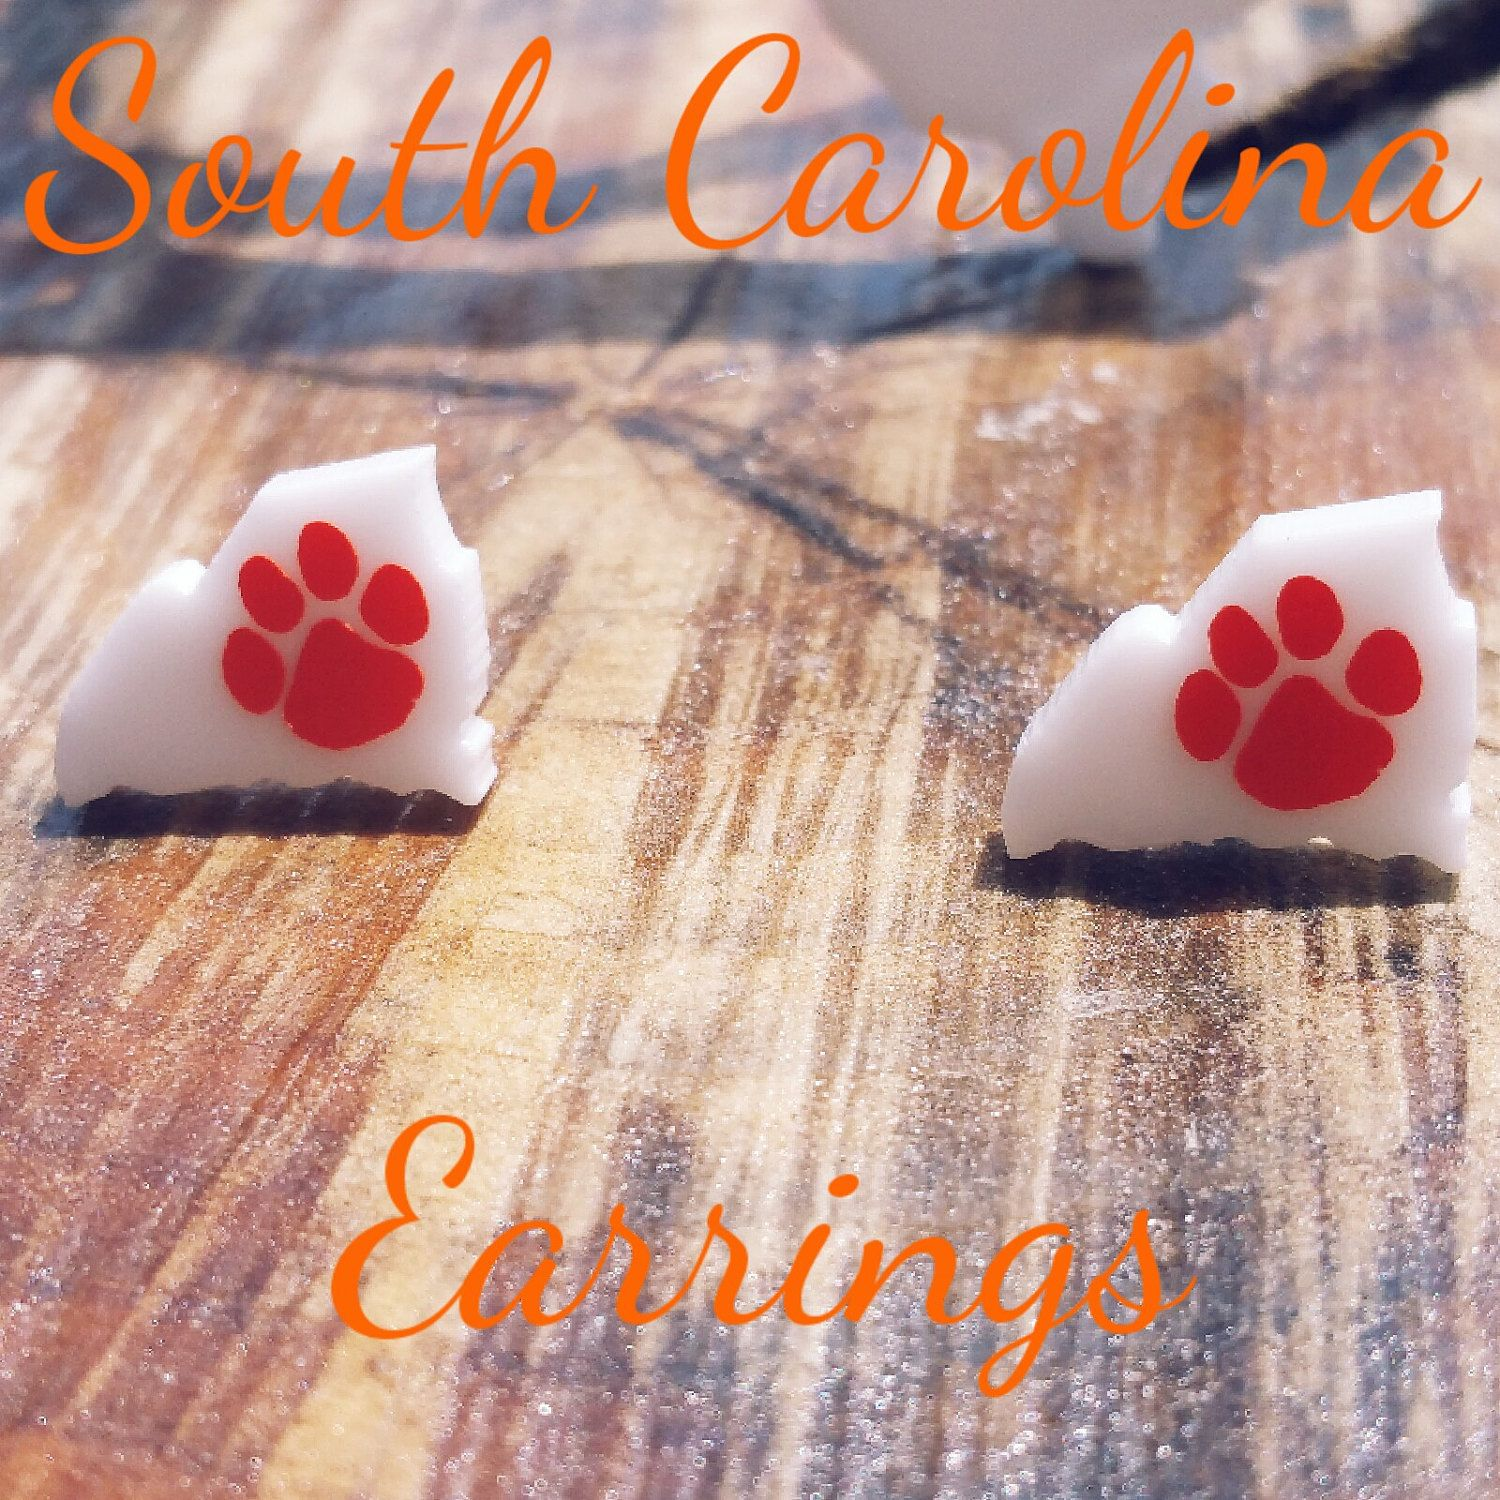 New Type Of Earrings Available!!!! Sc Is The Only Shape Currently Stocked